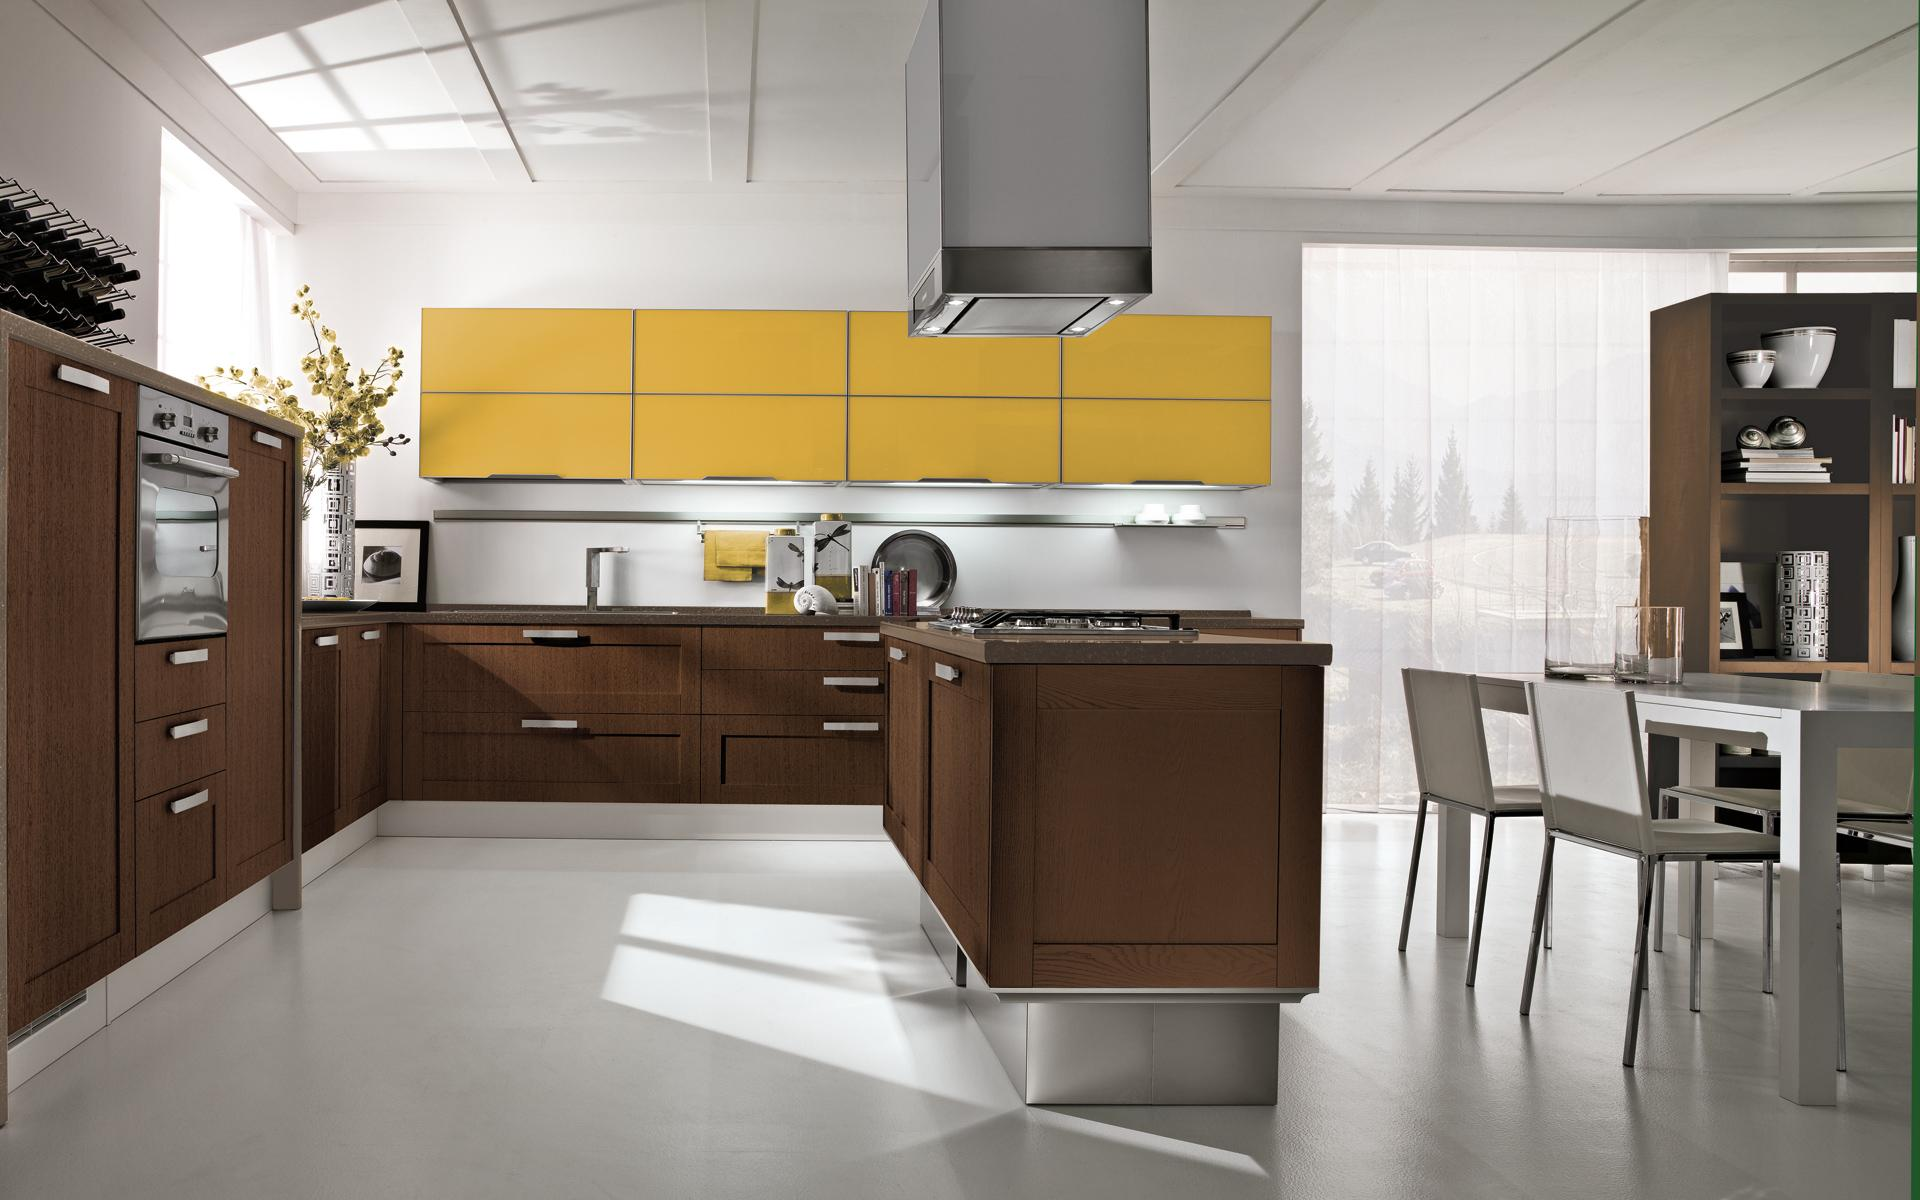 Cucina lube creativa idee di design decorativo per for Rizzo arreda